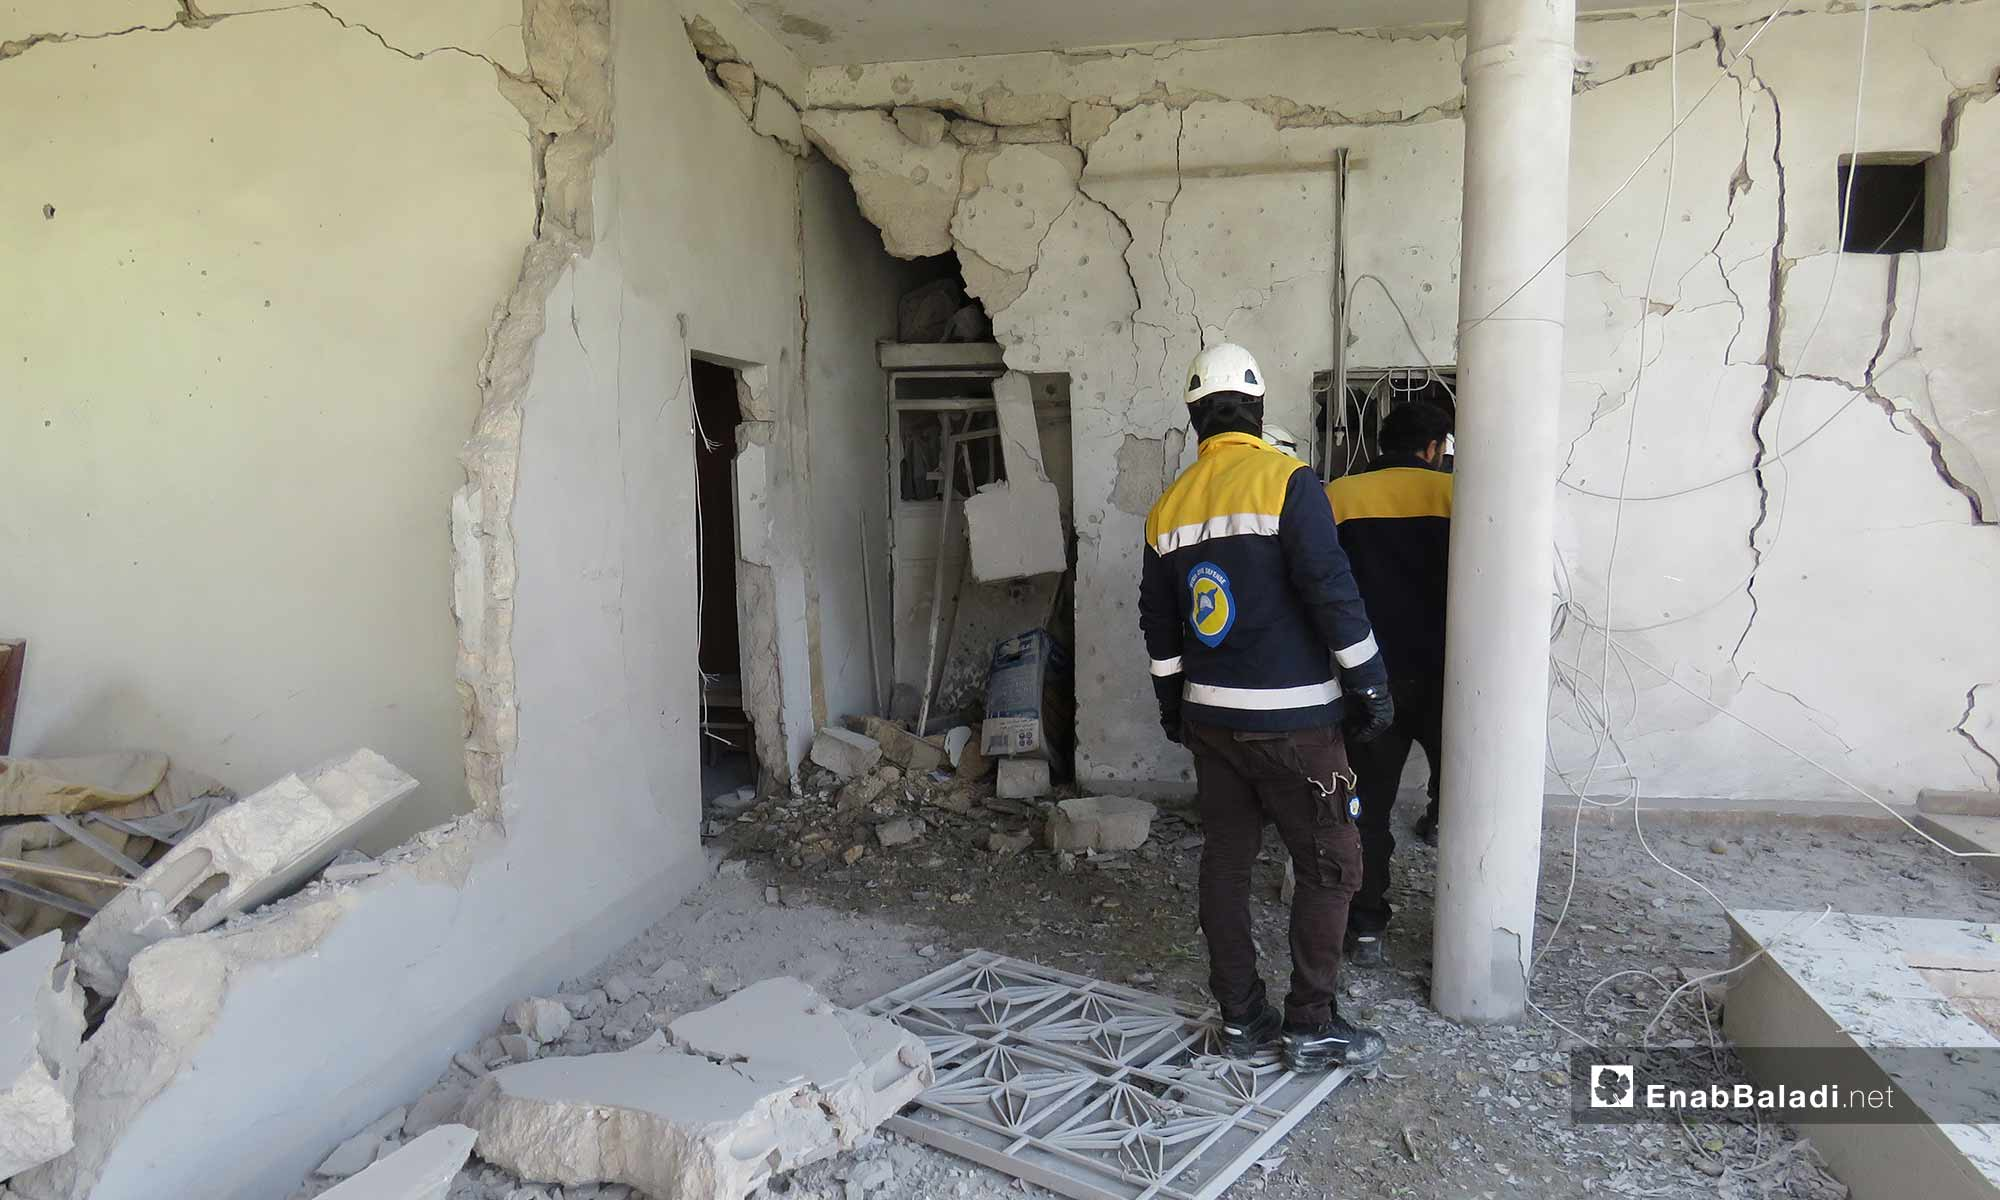 The destruction caused by the Syrian regime's attacks on the town of Qalaat al-Madiq, rural Hama – April 25, 2019 (Enab Baladi)